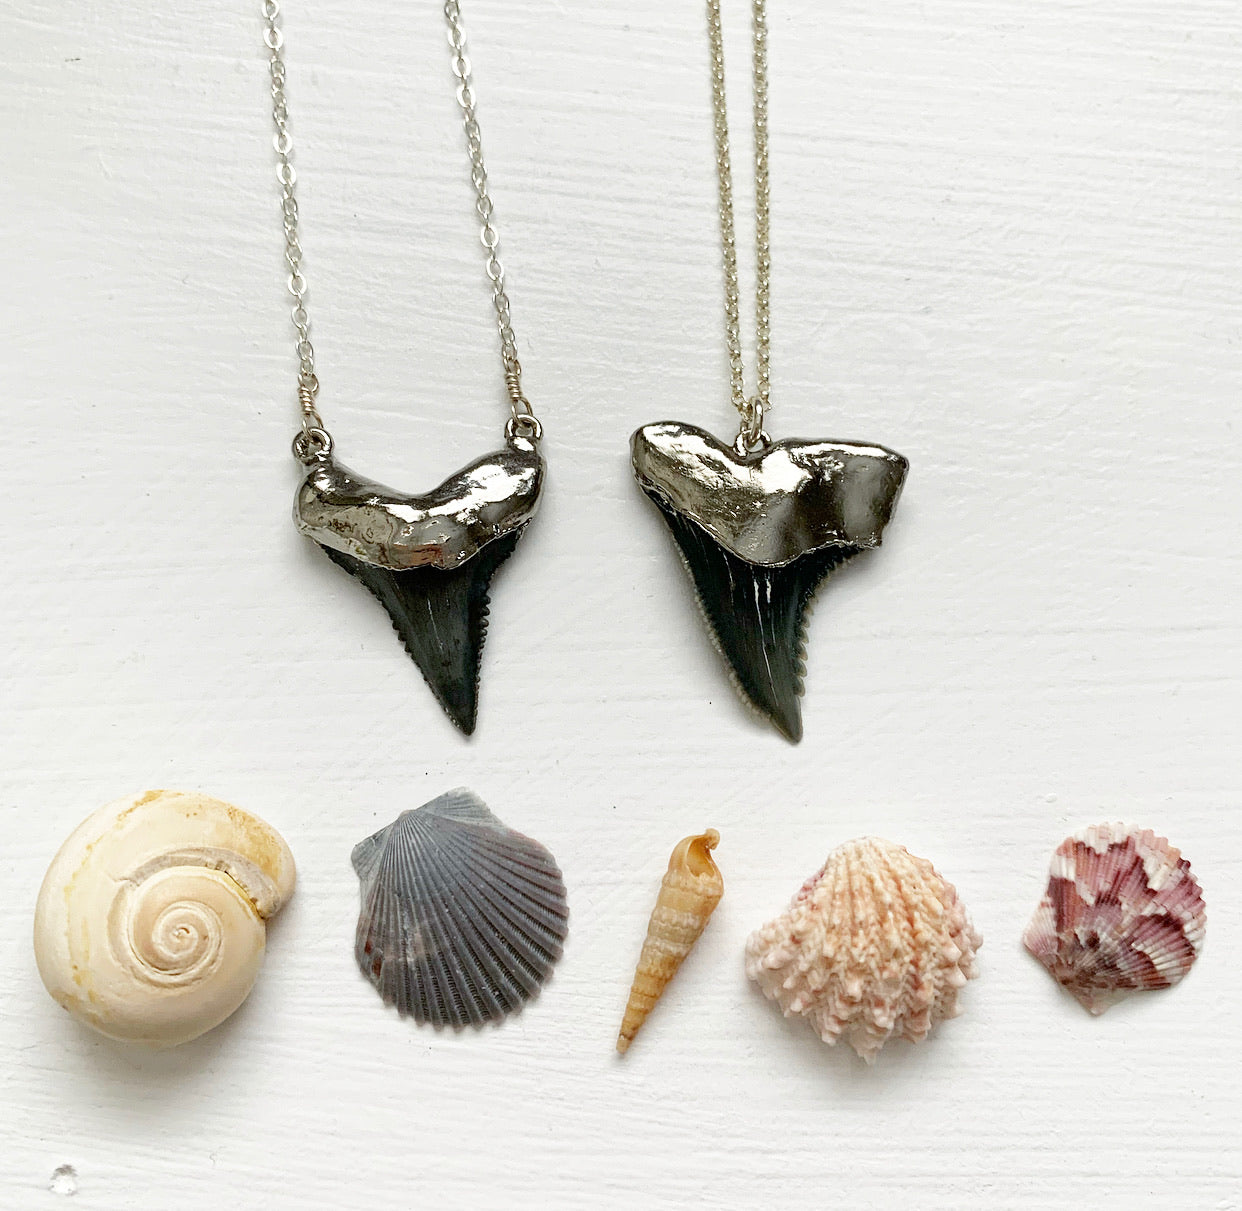 912-Shark Tooth Necklace